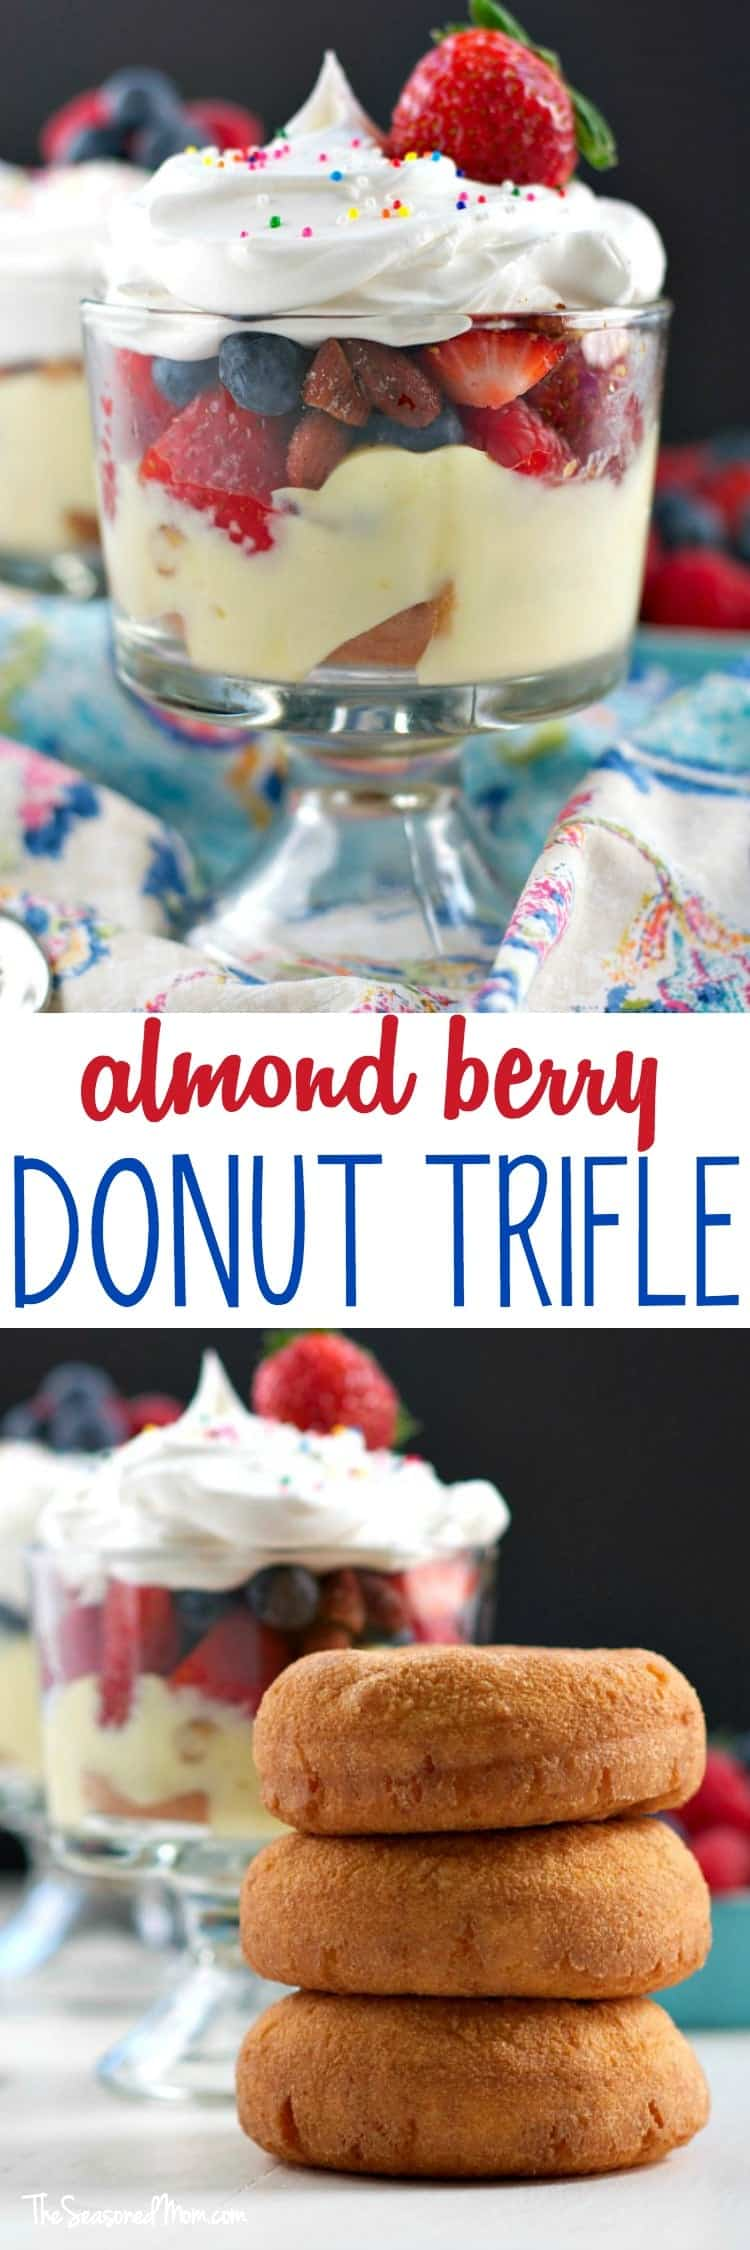 Layers of fresh fruit, roasted almonds, creamy pudding, and cake donuts create a decadent dish that's perfect for a special brunch celebration! In only 15 minutes, you can prepare a beautiful Almond Berry Donut Trifle for a quick and easy make-ahead breakfast or dessert that is sure to wow your guests!